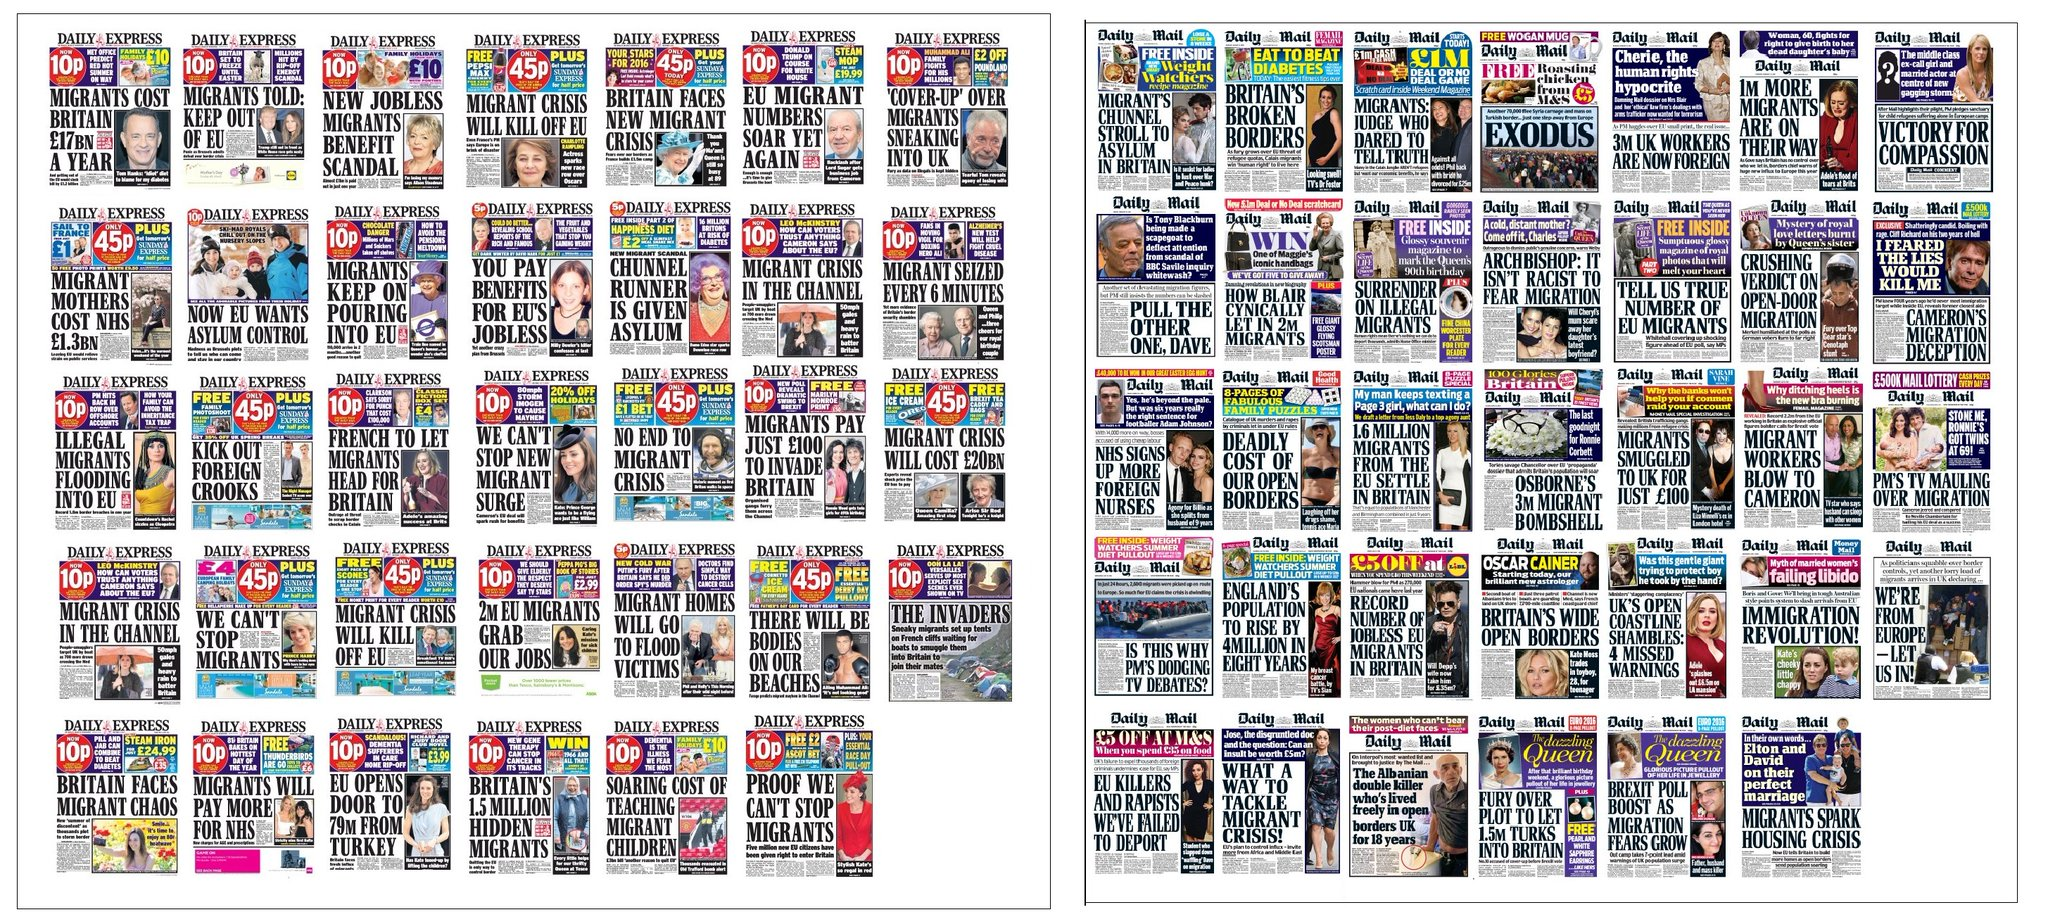 A collage of anti-EU, anti-migrant front pages from UK newspapers.